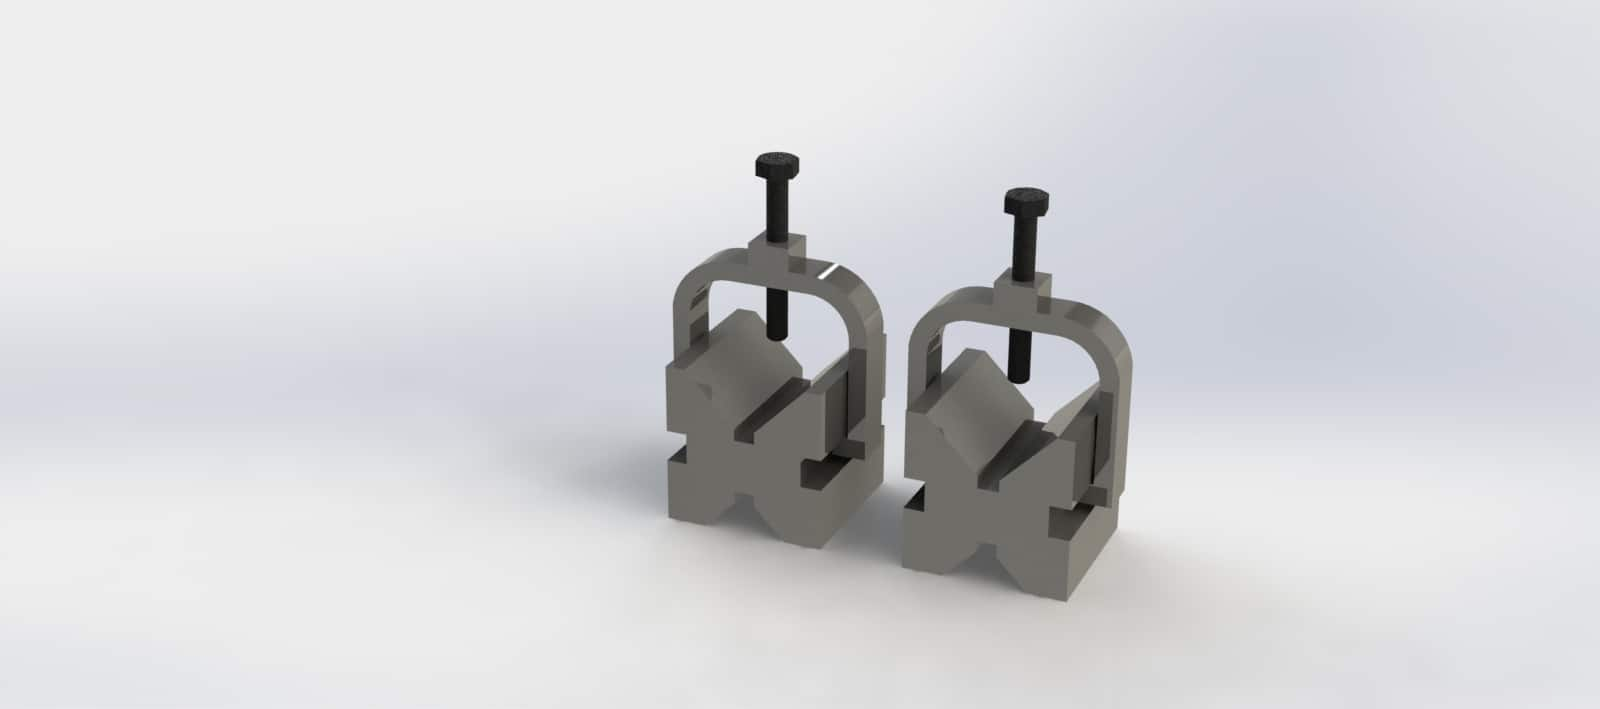 13 Practical Machining Projects for Students and Beginners – Make It